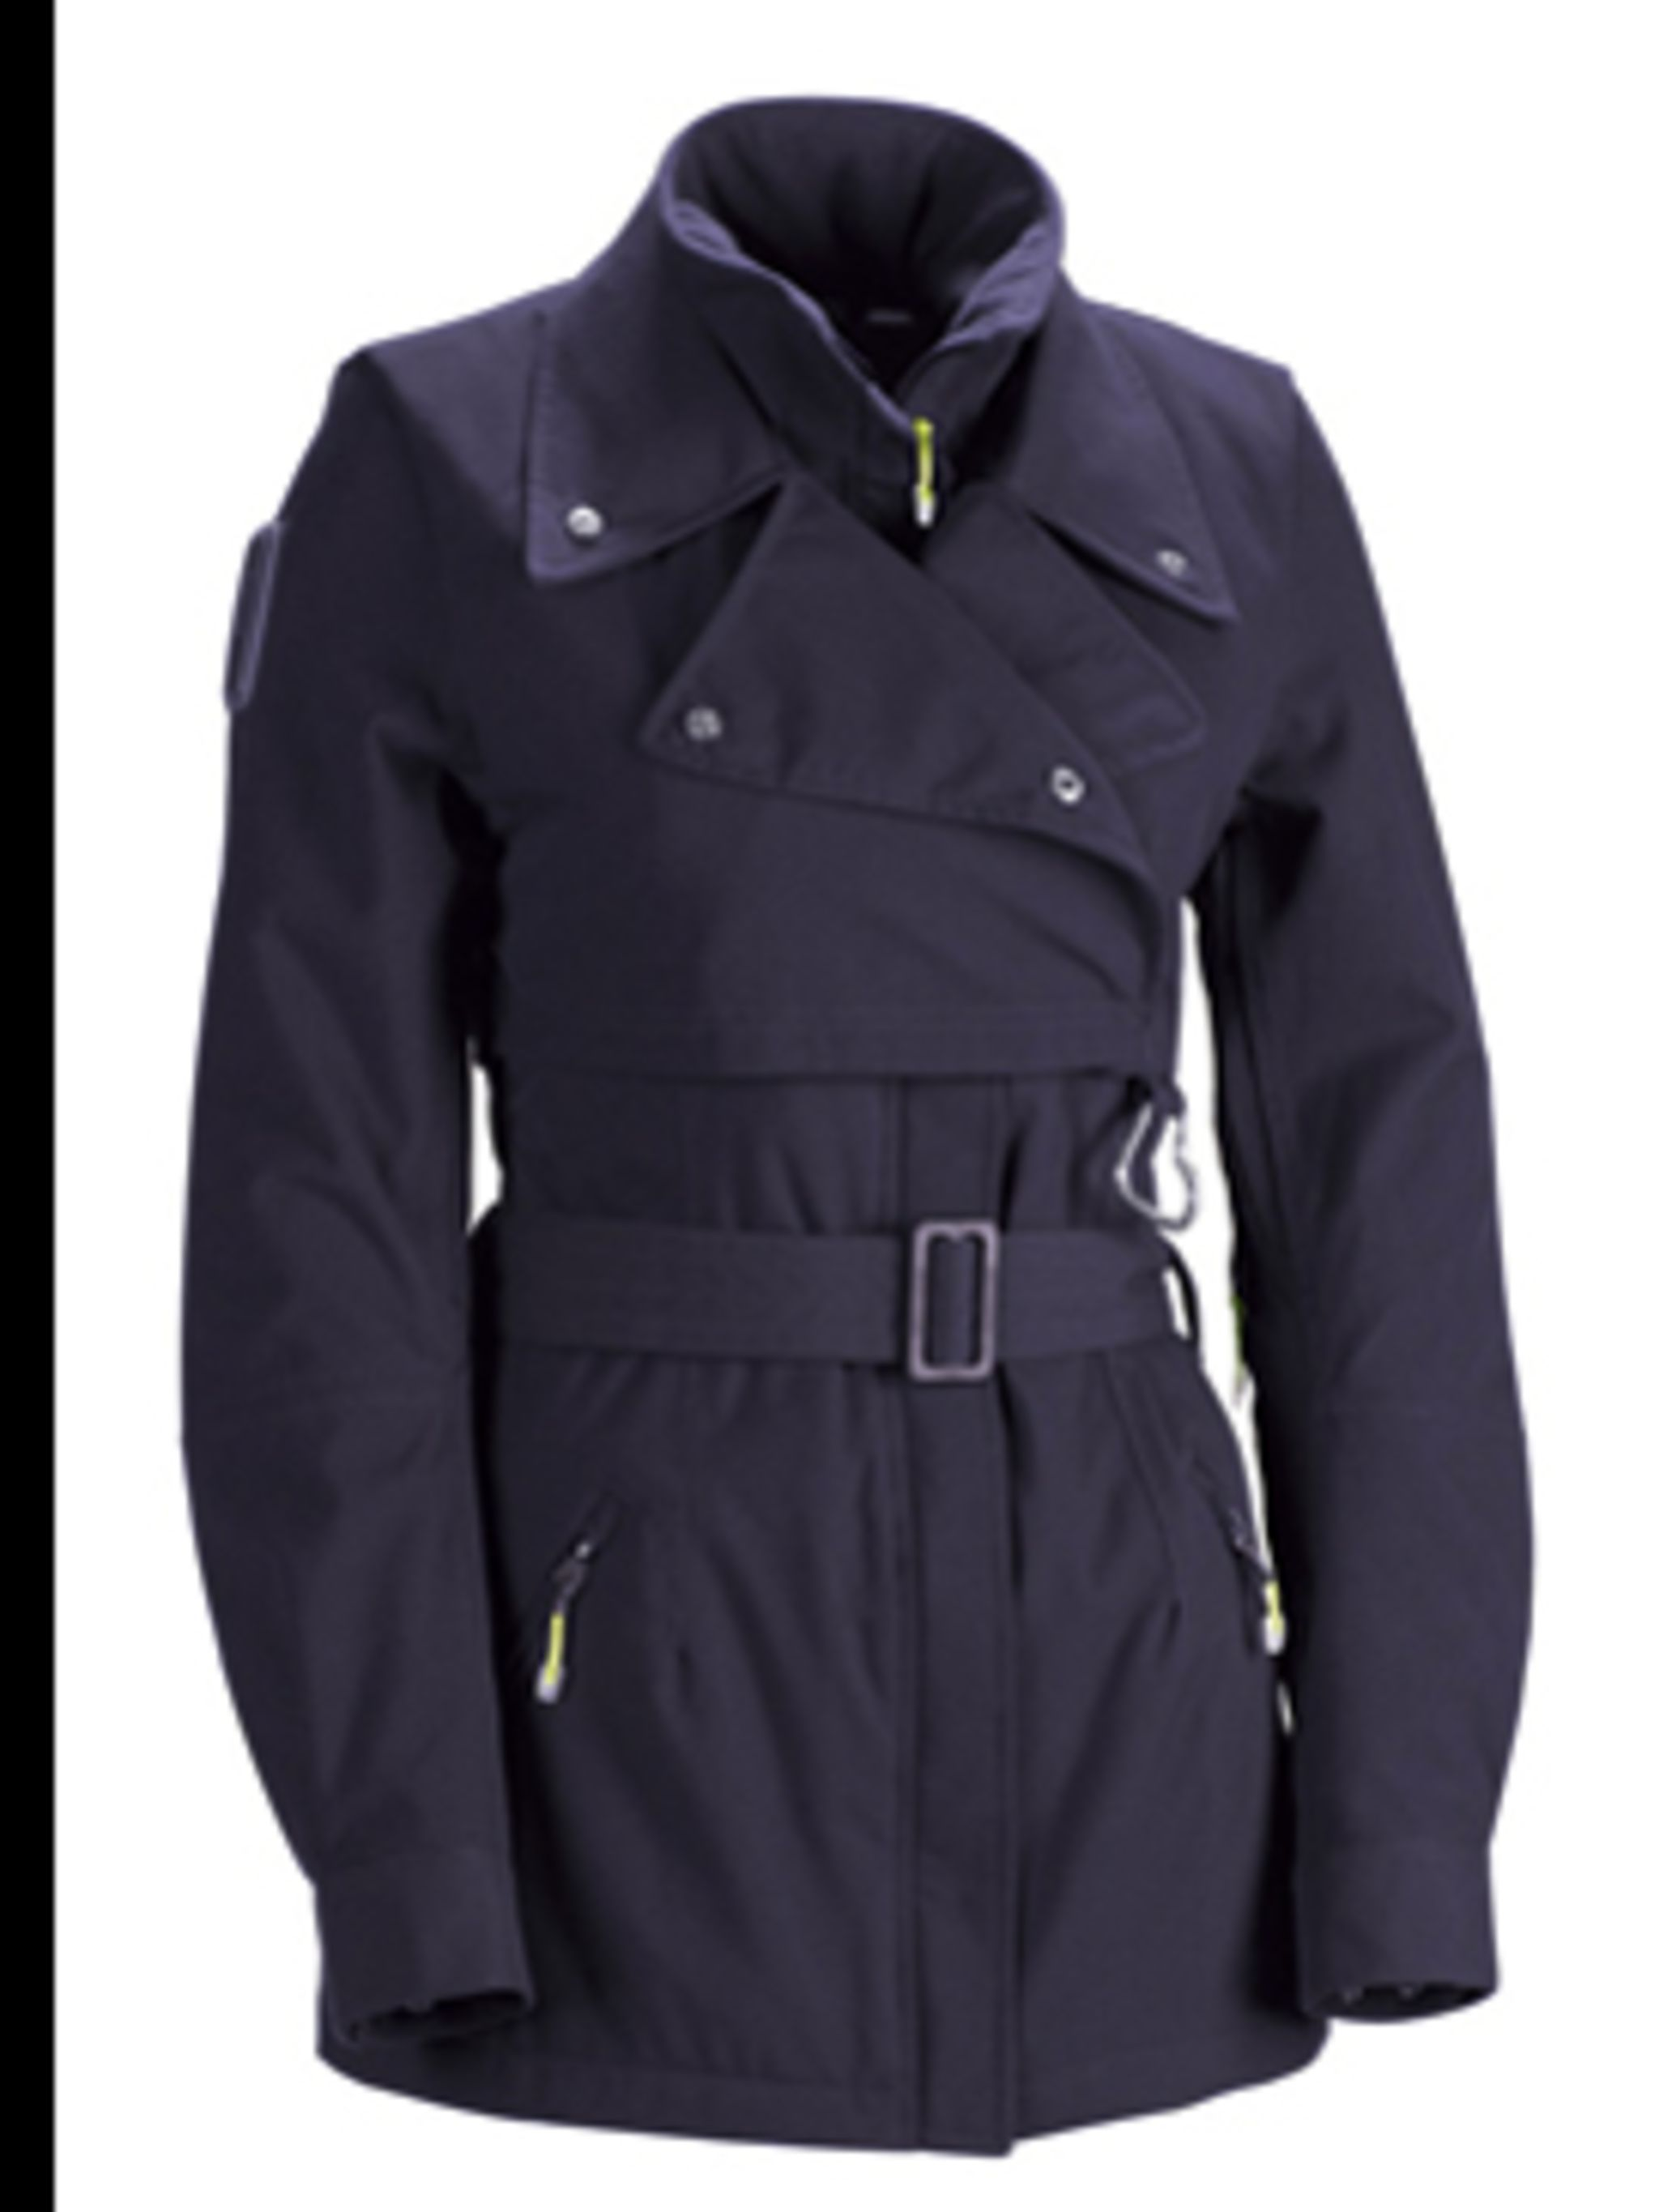 <p>Purple belted jacket, £230, from Adidas by Stella McCartney, for stockists call (0870 240 4204)</p>